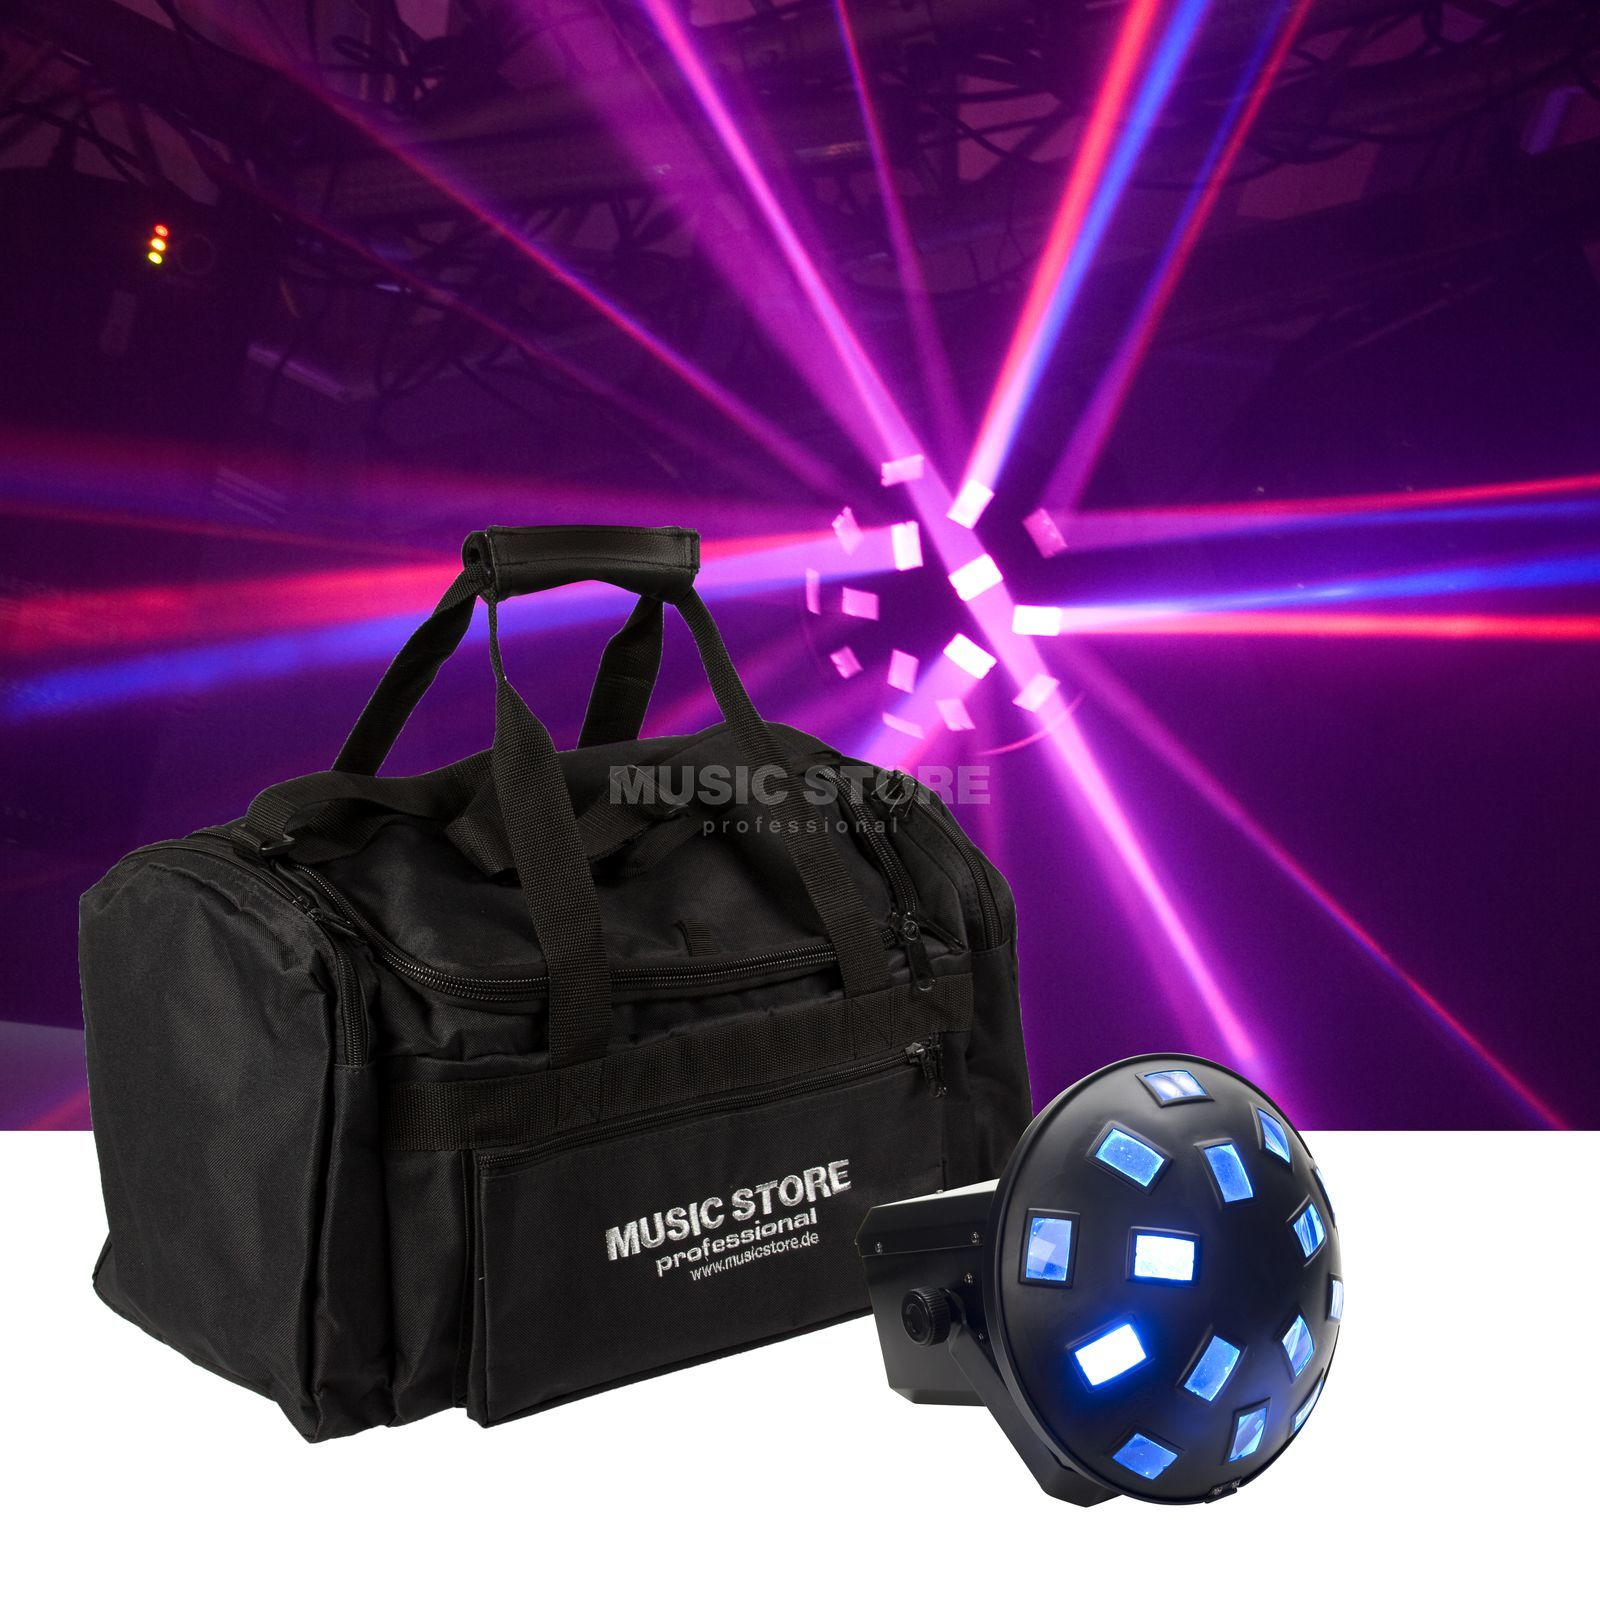 lightmaXX Small Mushroom LED + Bag - Set Produktbild